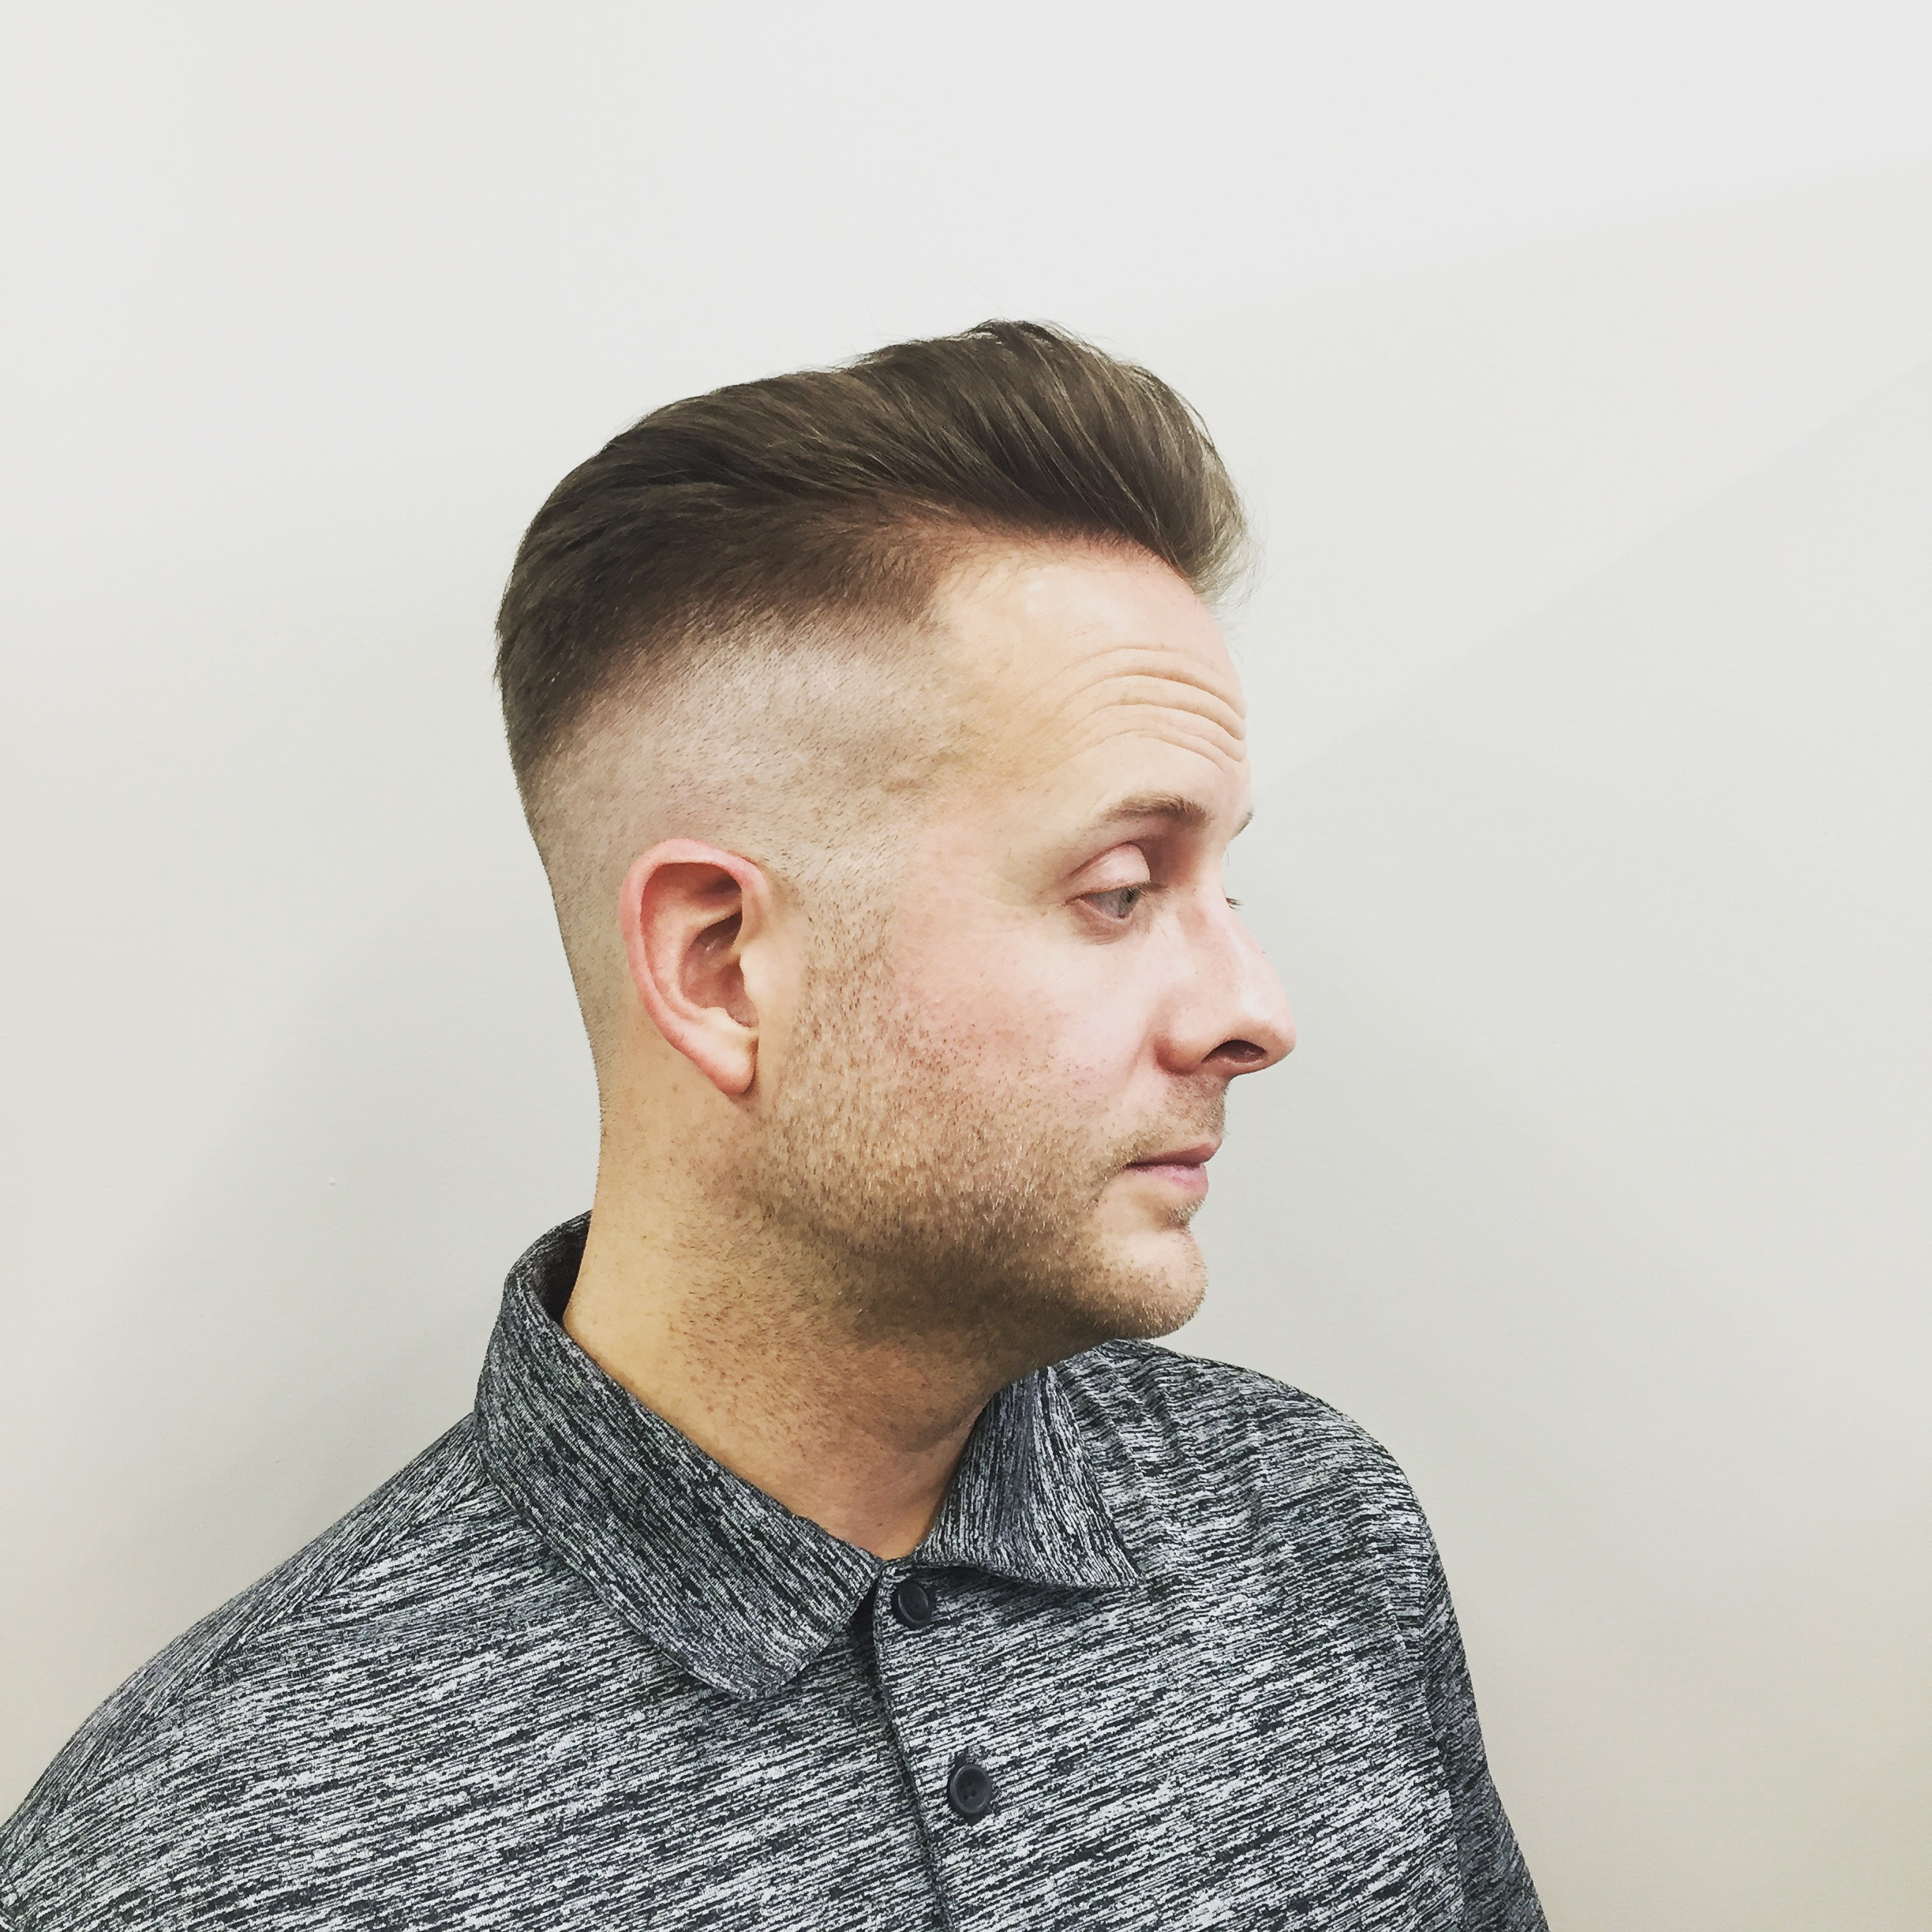 Undercuts are the latest throw it back hair style for summer. On this model is a classic cut courtesy of Alex Masi of Le Reve Salon & Barbershop and Dream Spa in Cherry Hill.